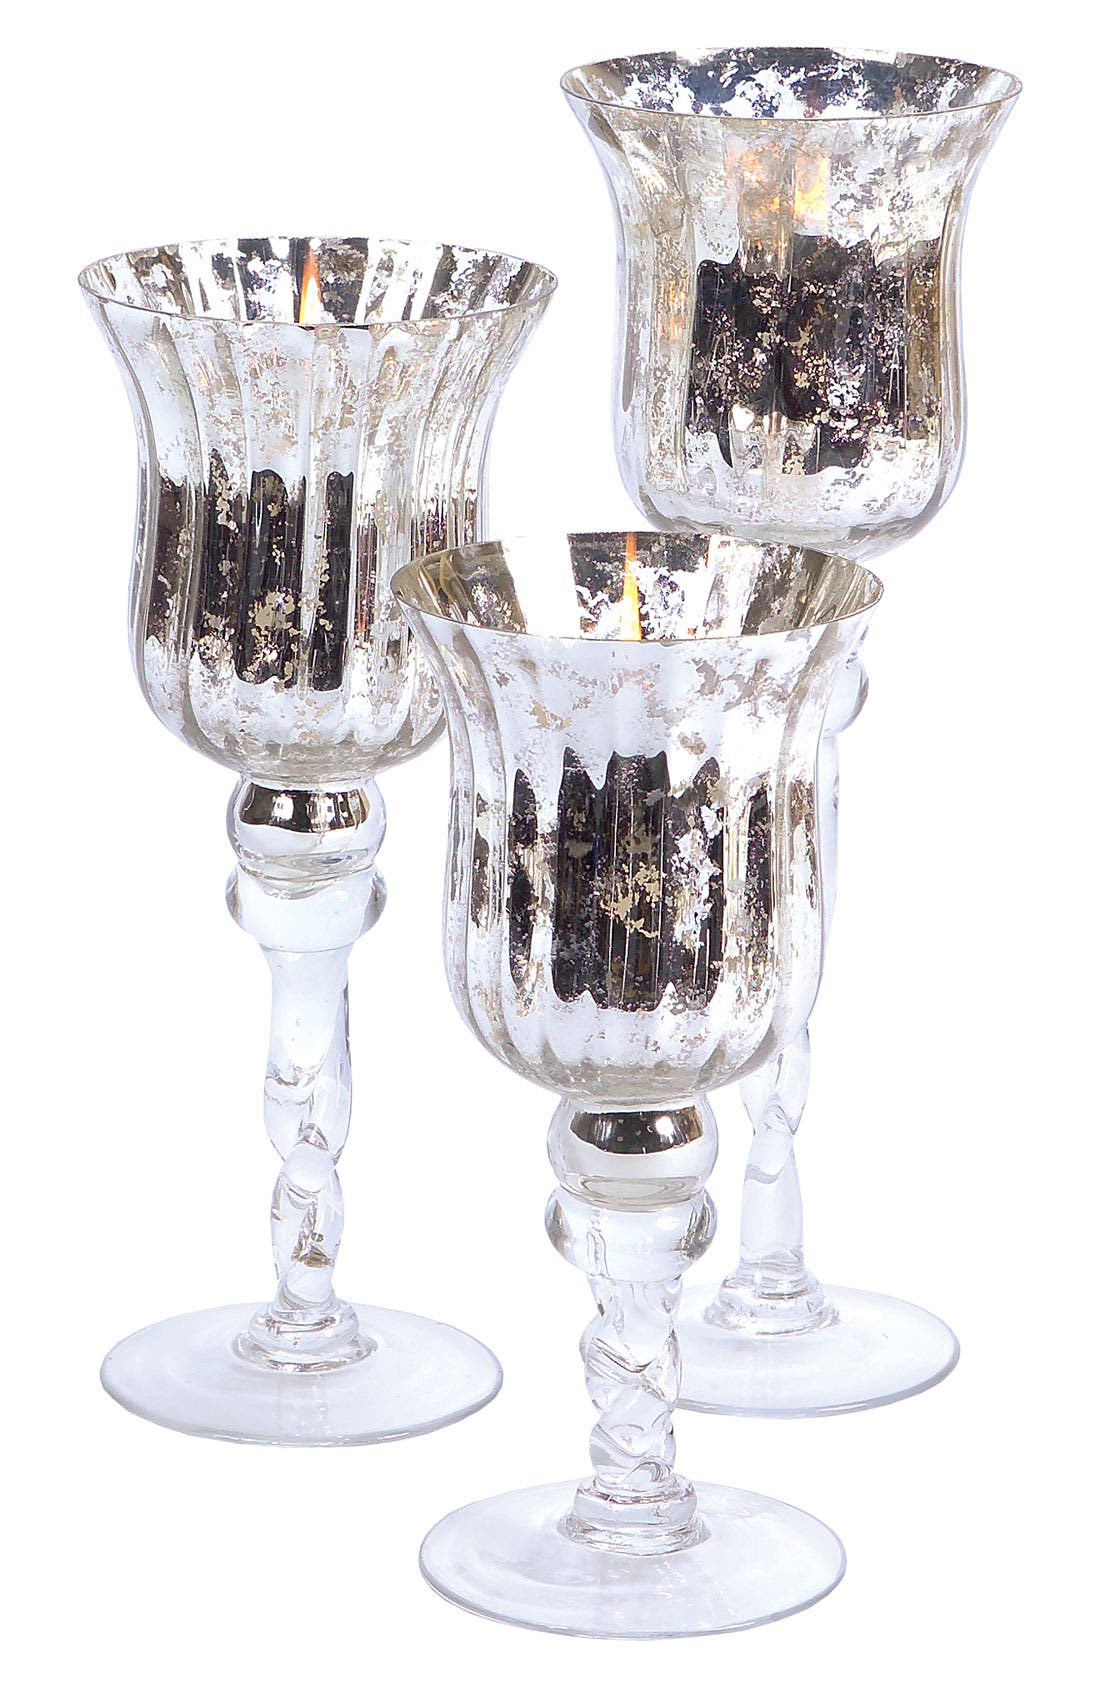 Main Image - Melrose Gifts Mercury Glass Candle Holder